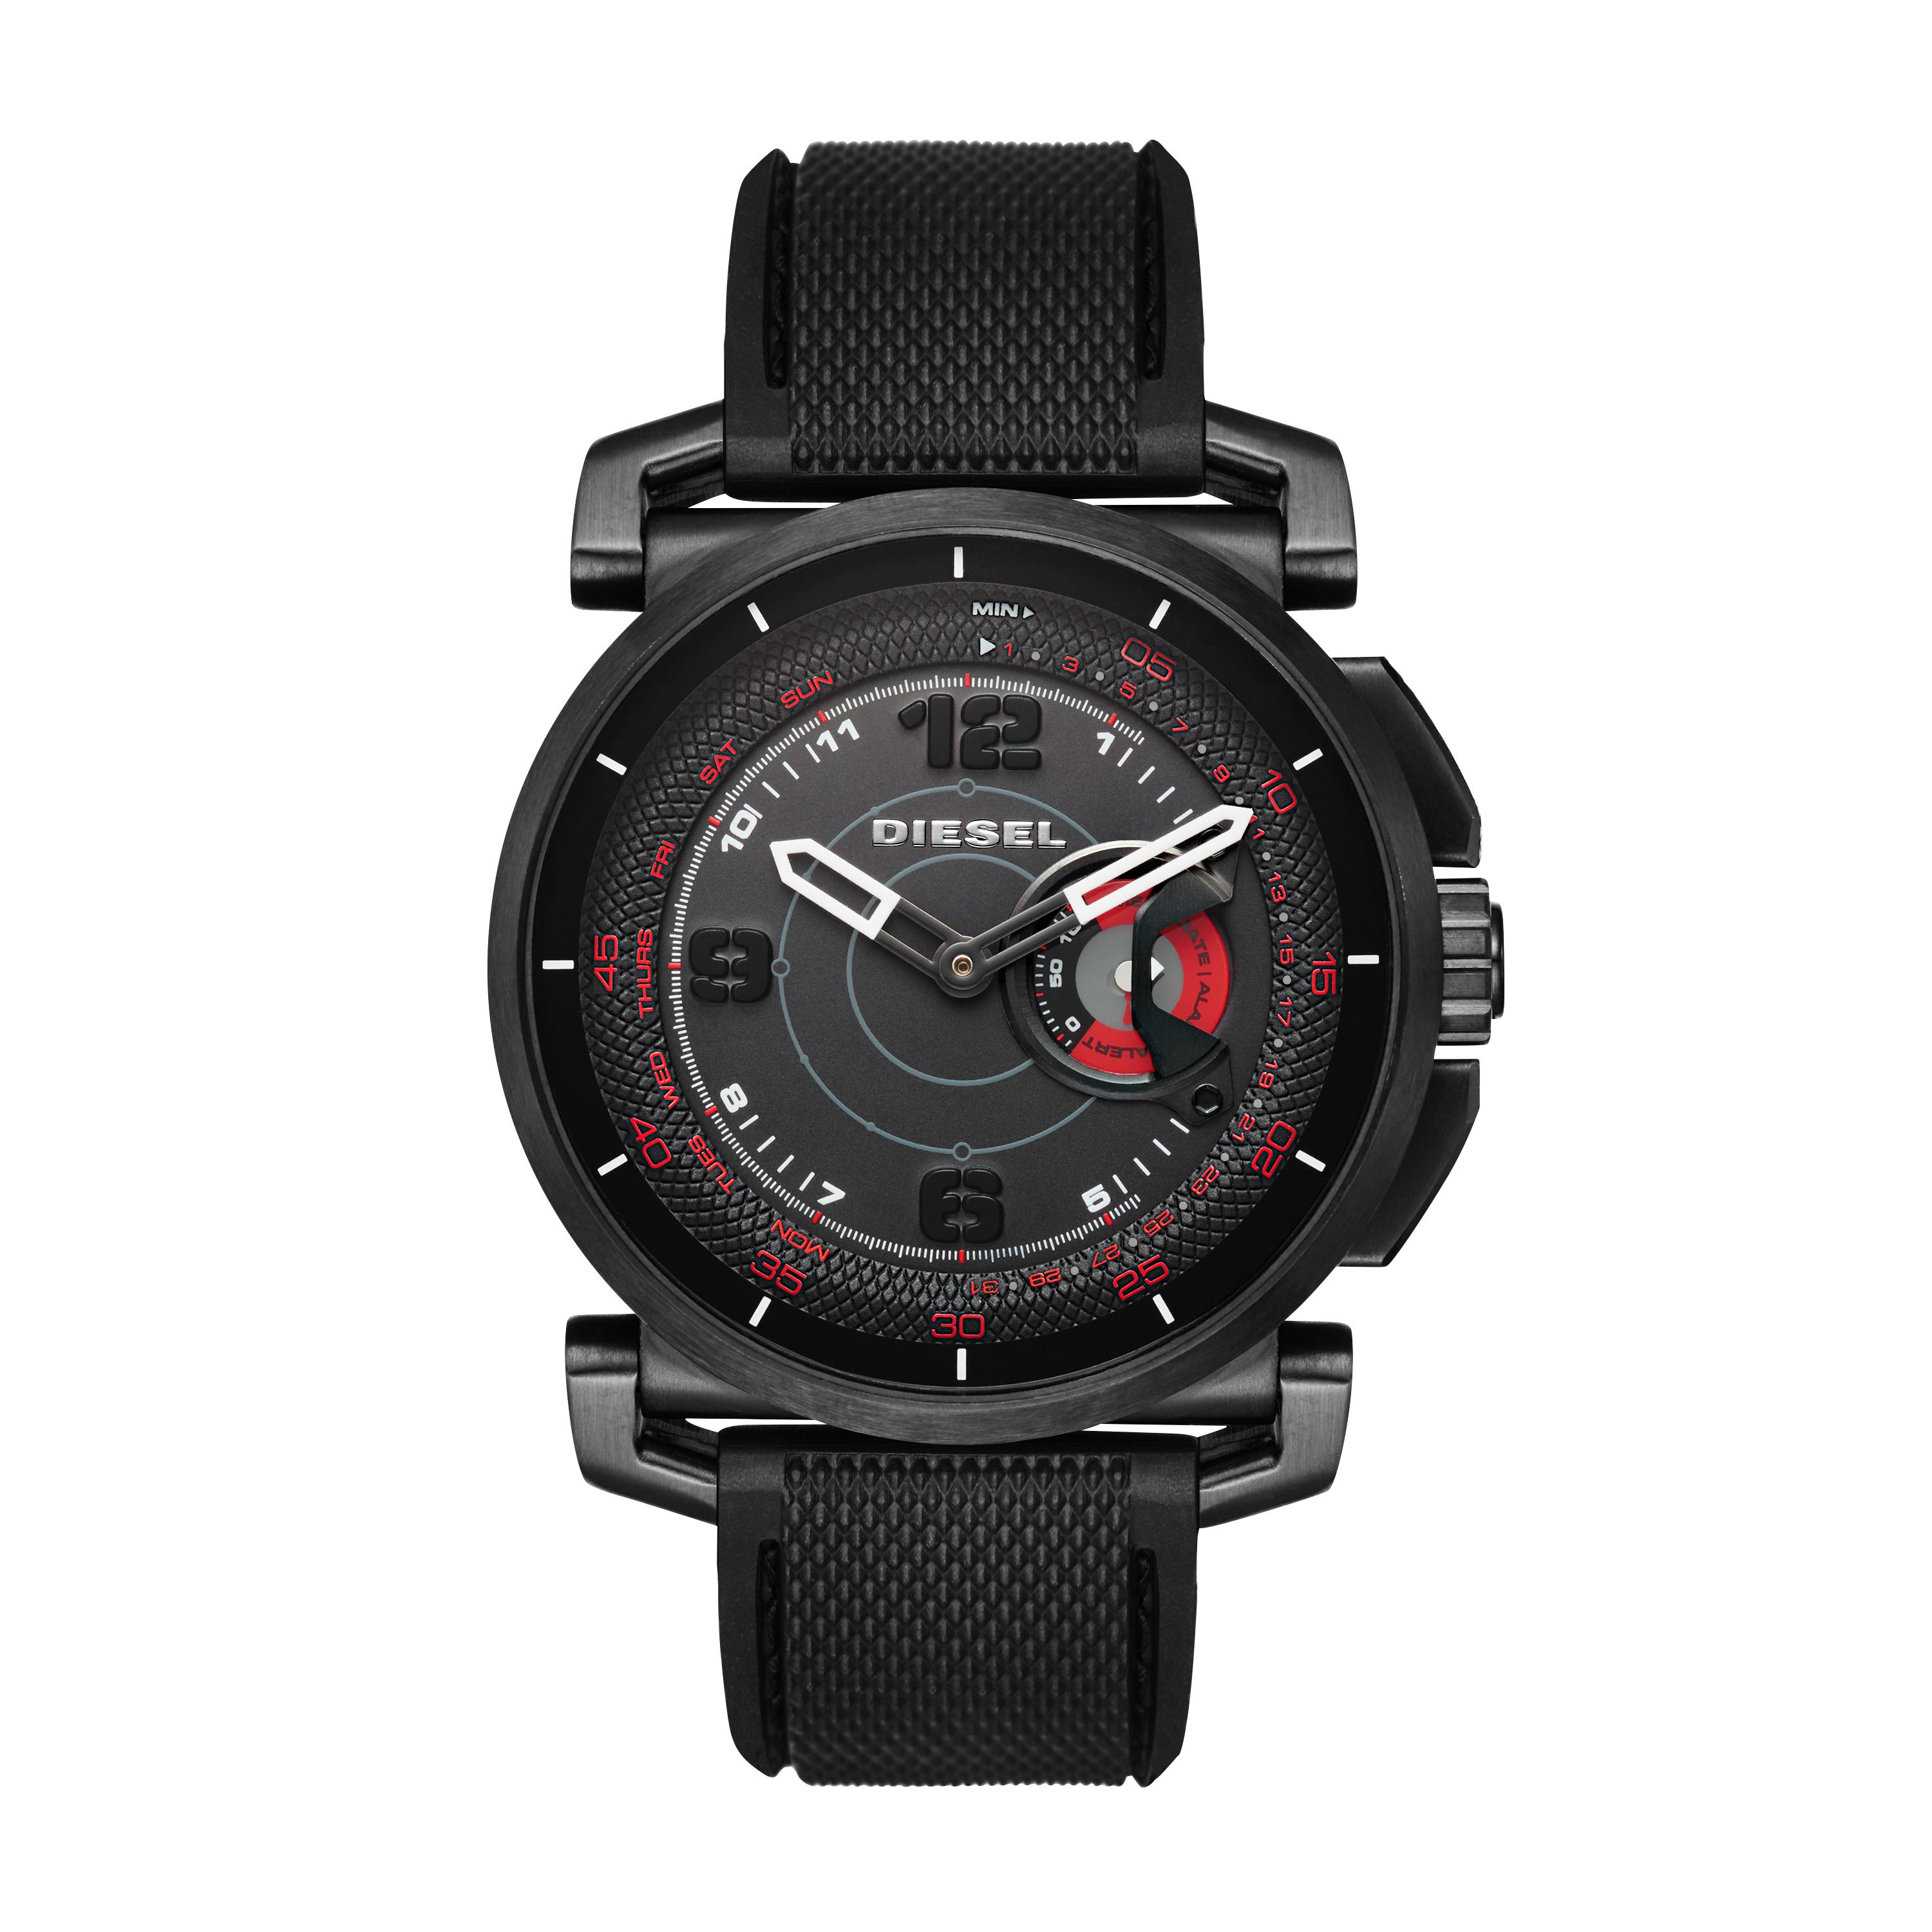 buy cheap diesel watch compare men 39 s watches prices for best uk deals. Black Bedroom Furniture Sets. Home Design Ideas